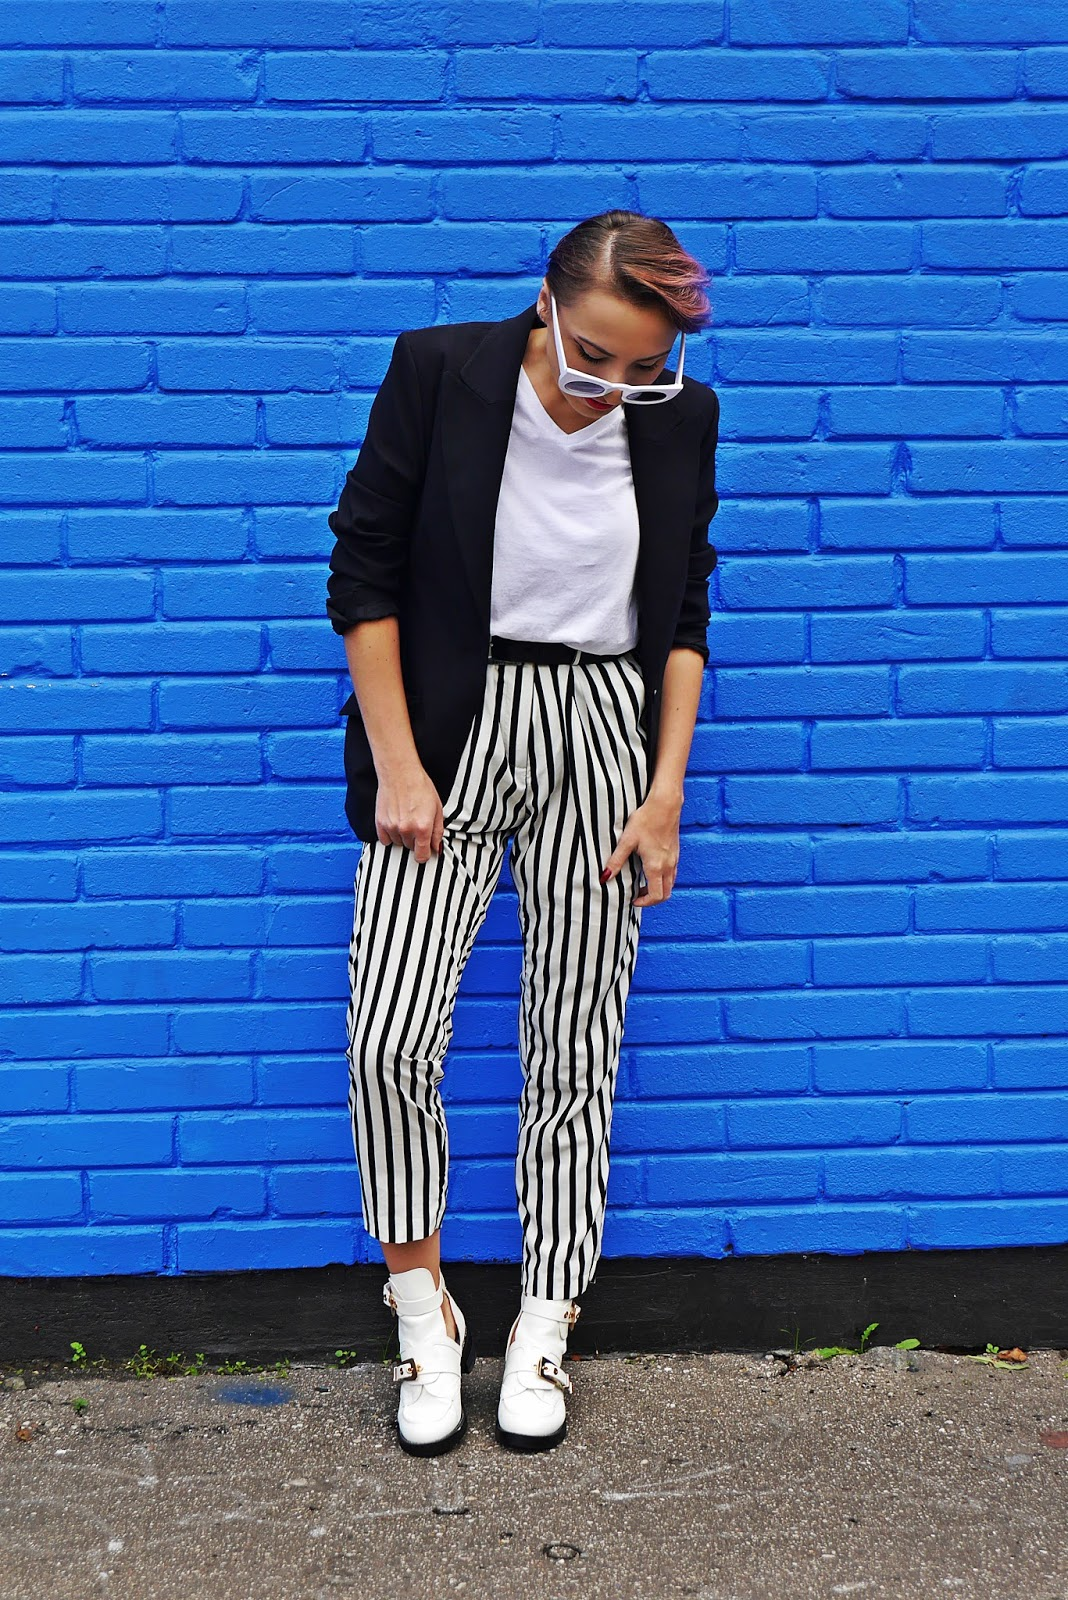 5_balenciaga_white_Ceinture_Ankle_Boots_stripes_pants_black_jacket_karyn_blog_modowy_280917